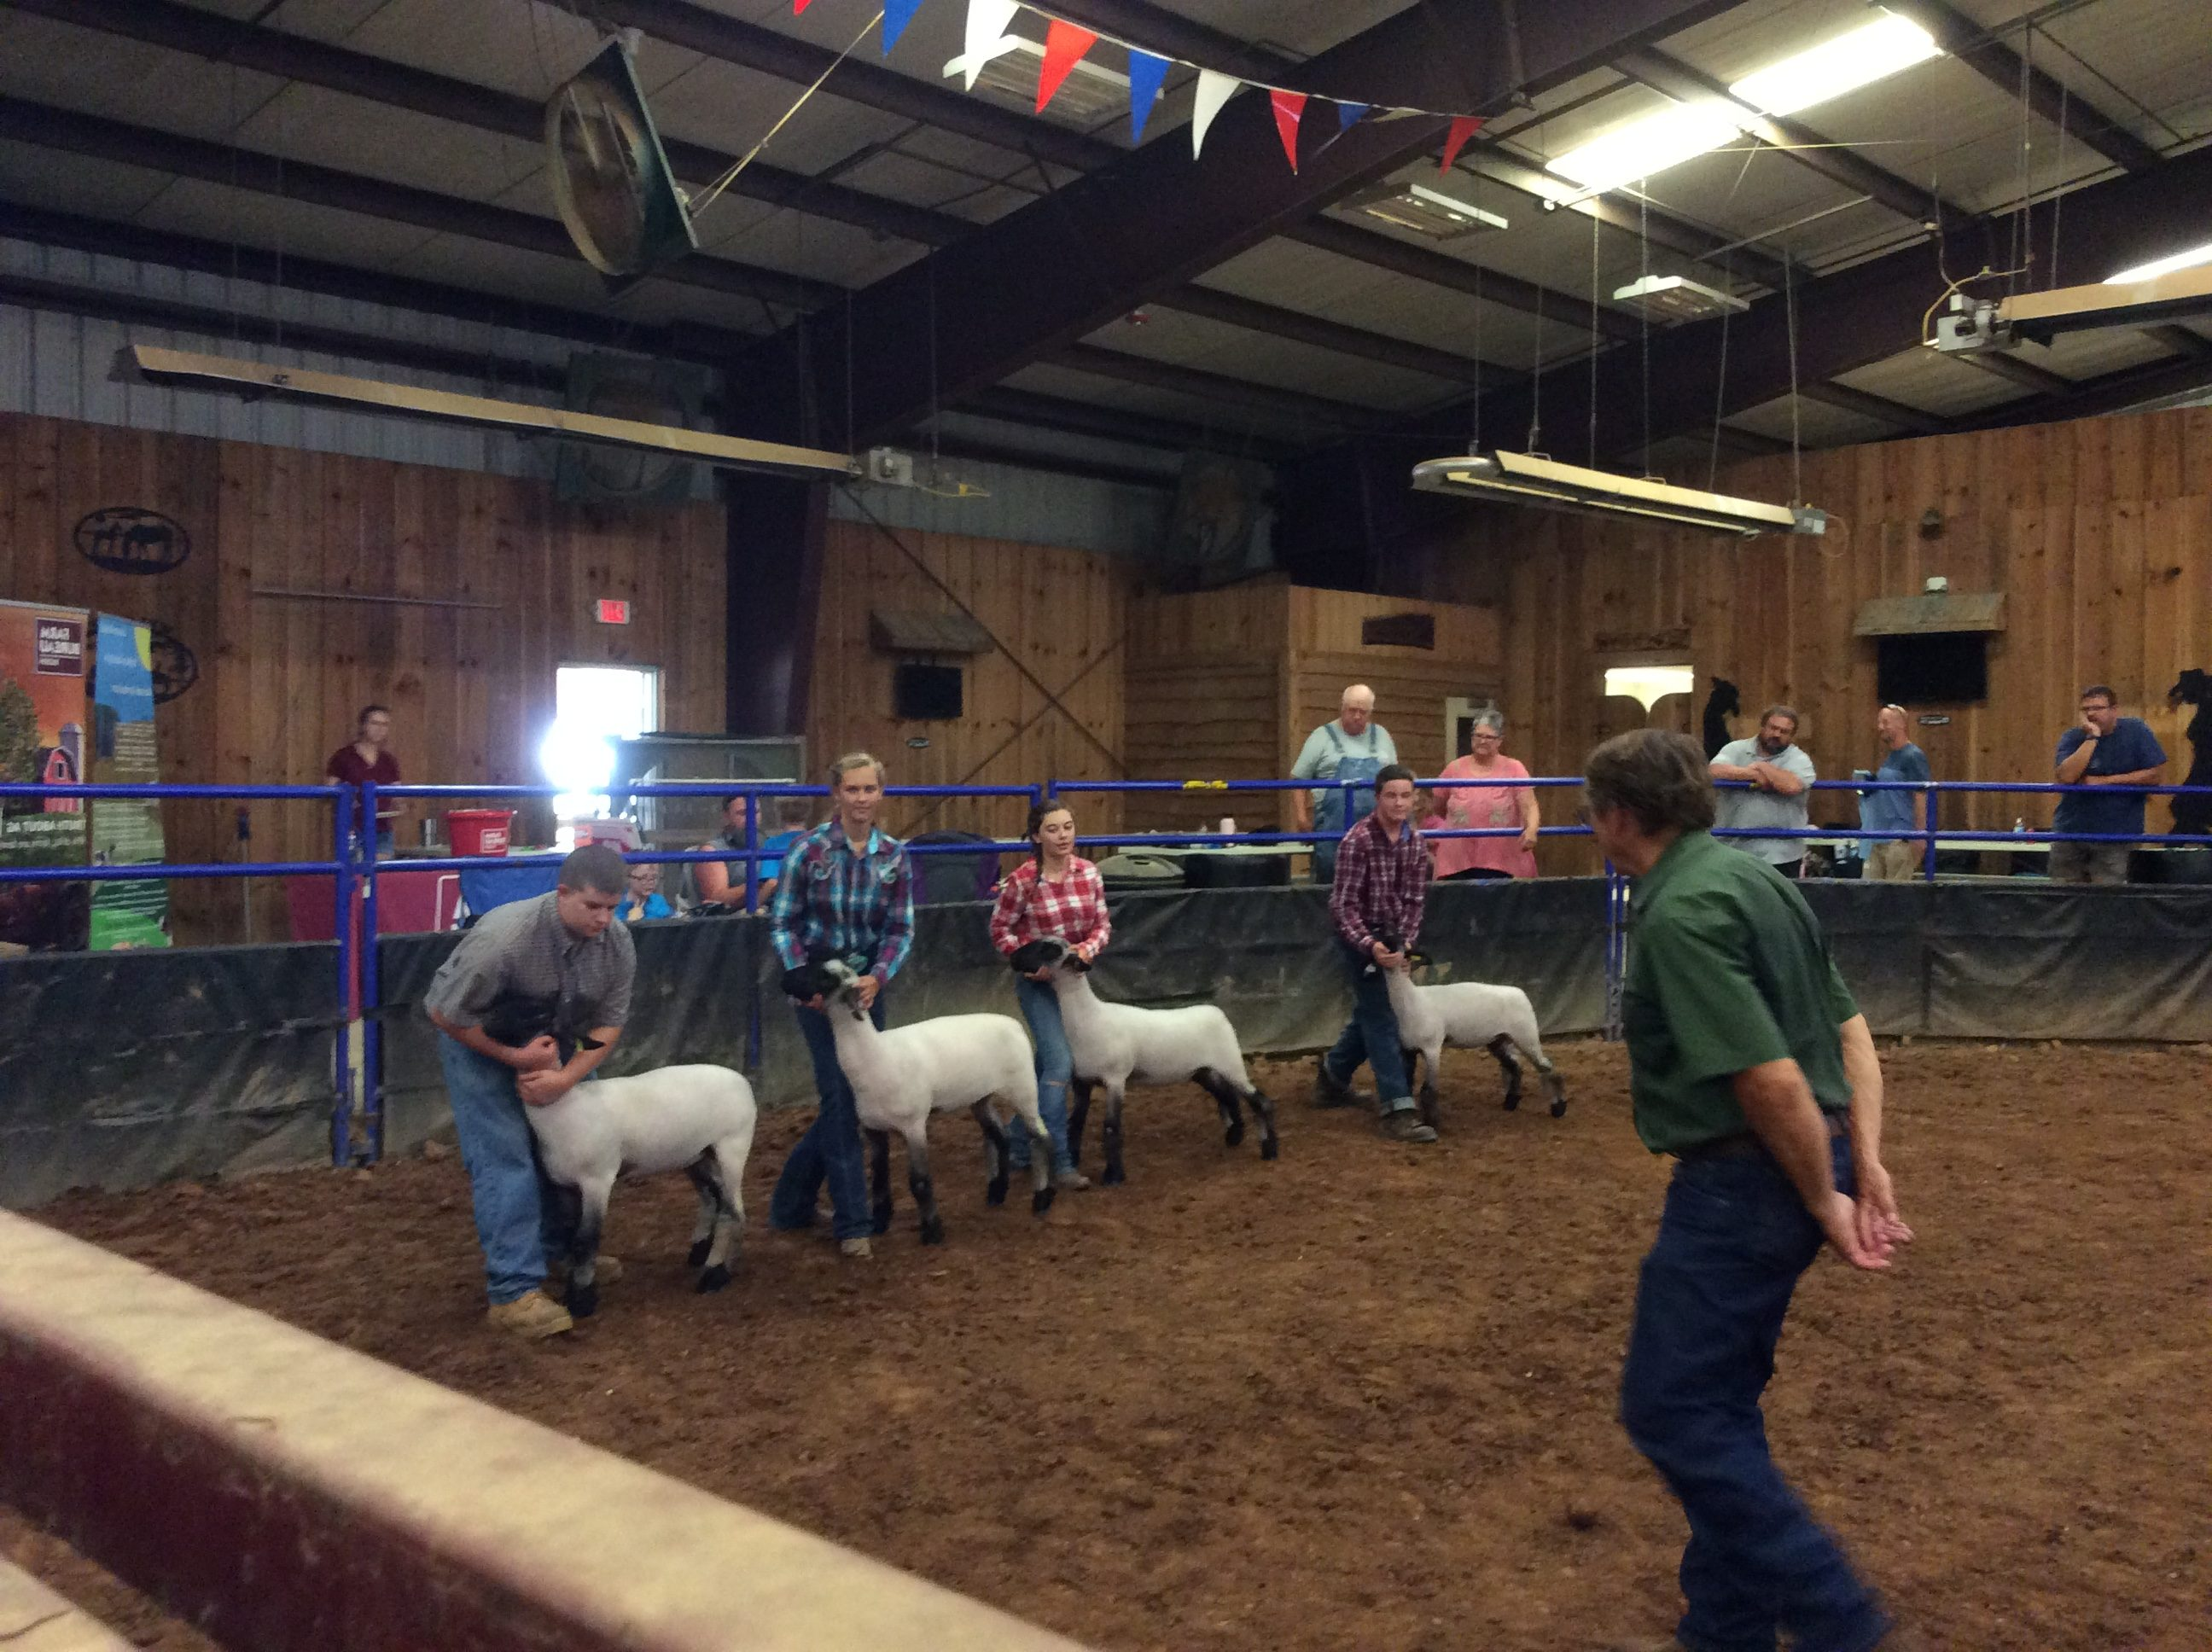 An indoor ring with four youth participants showing 4 sheep.